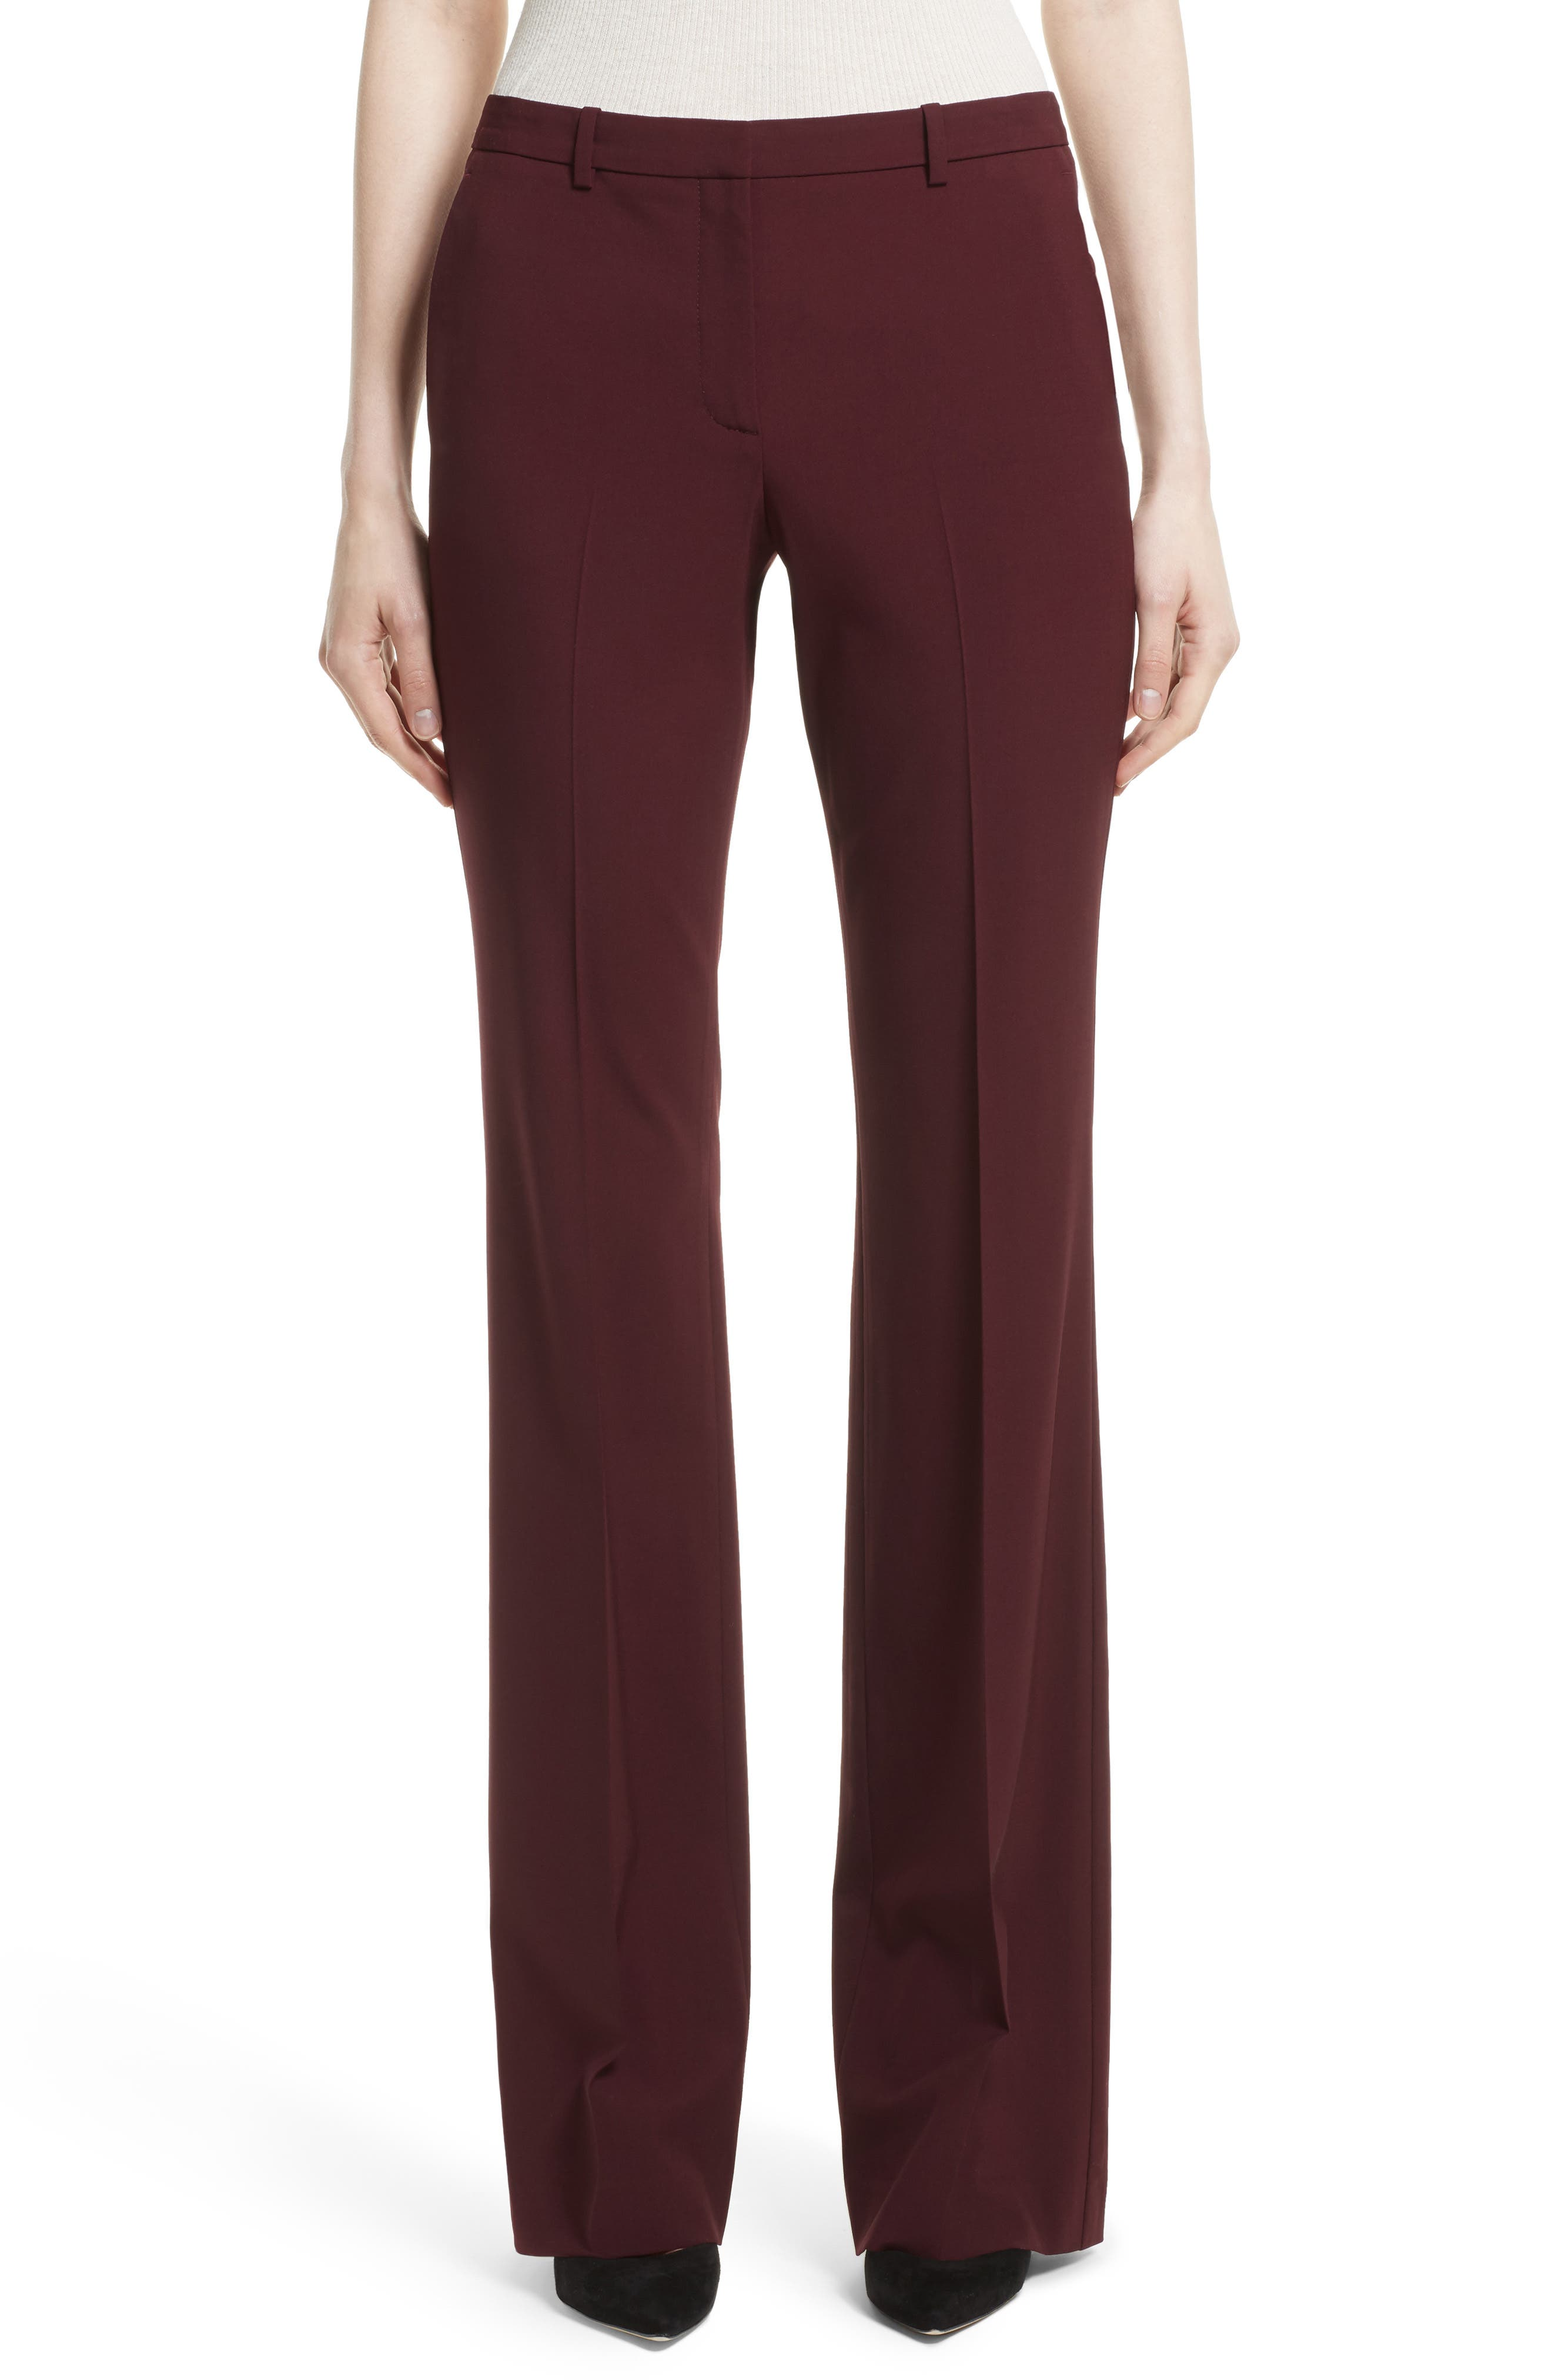 Demitria 2 Flare Leg Stretch Wool Pants,                             Main thumbnail 1, color,                             Dark Currant